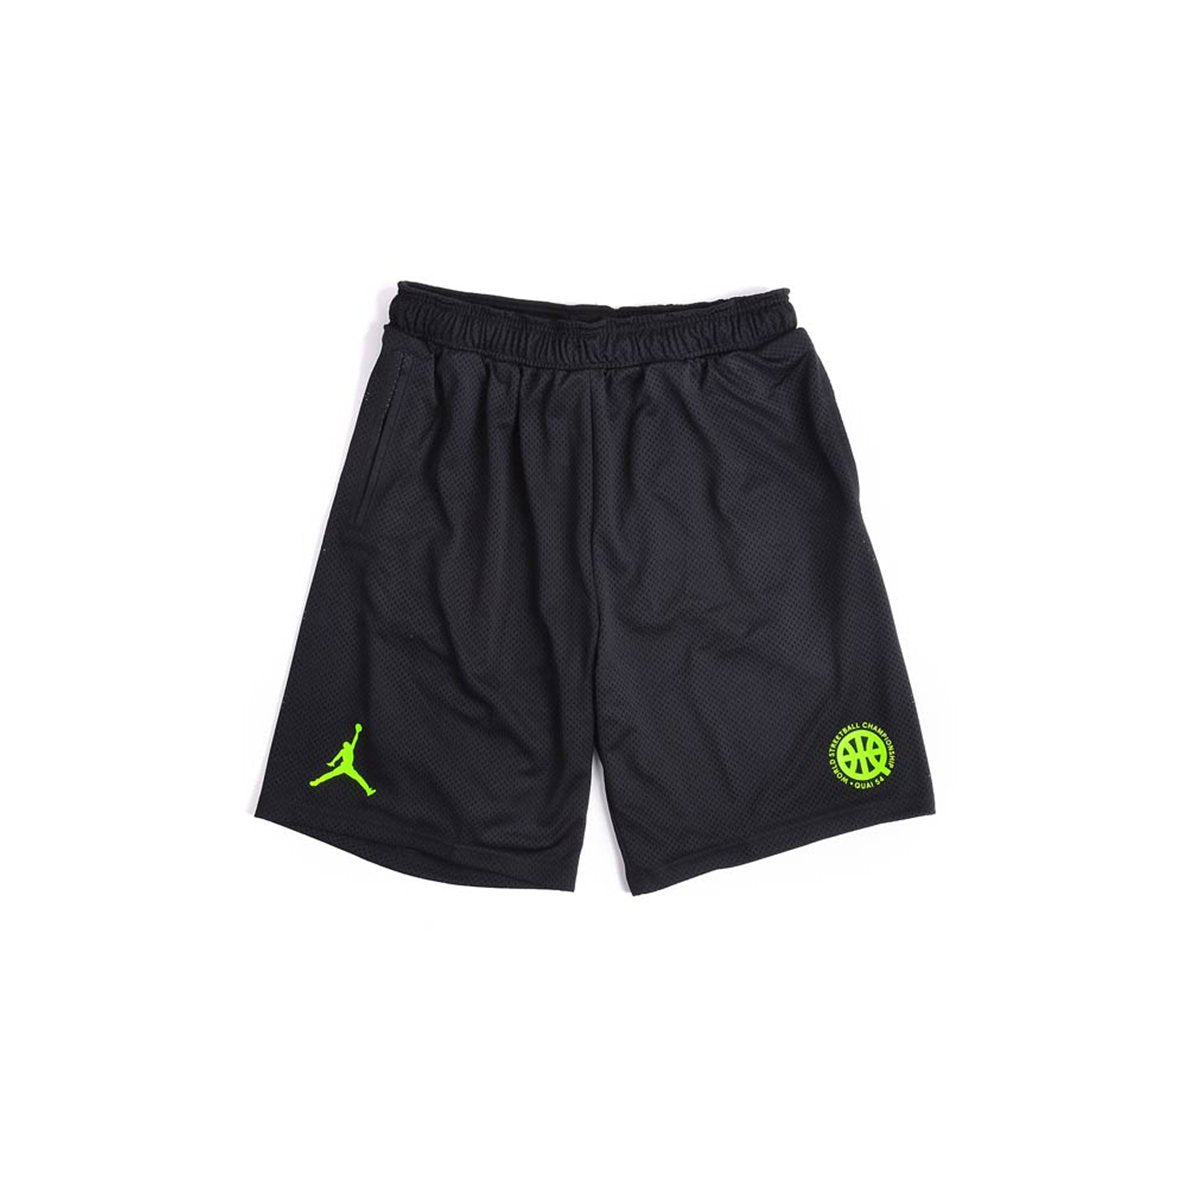 nike fleece exp club short particle rose & white